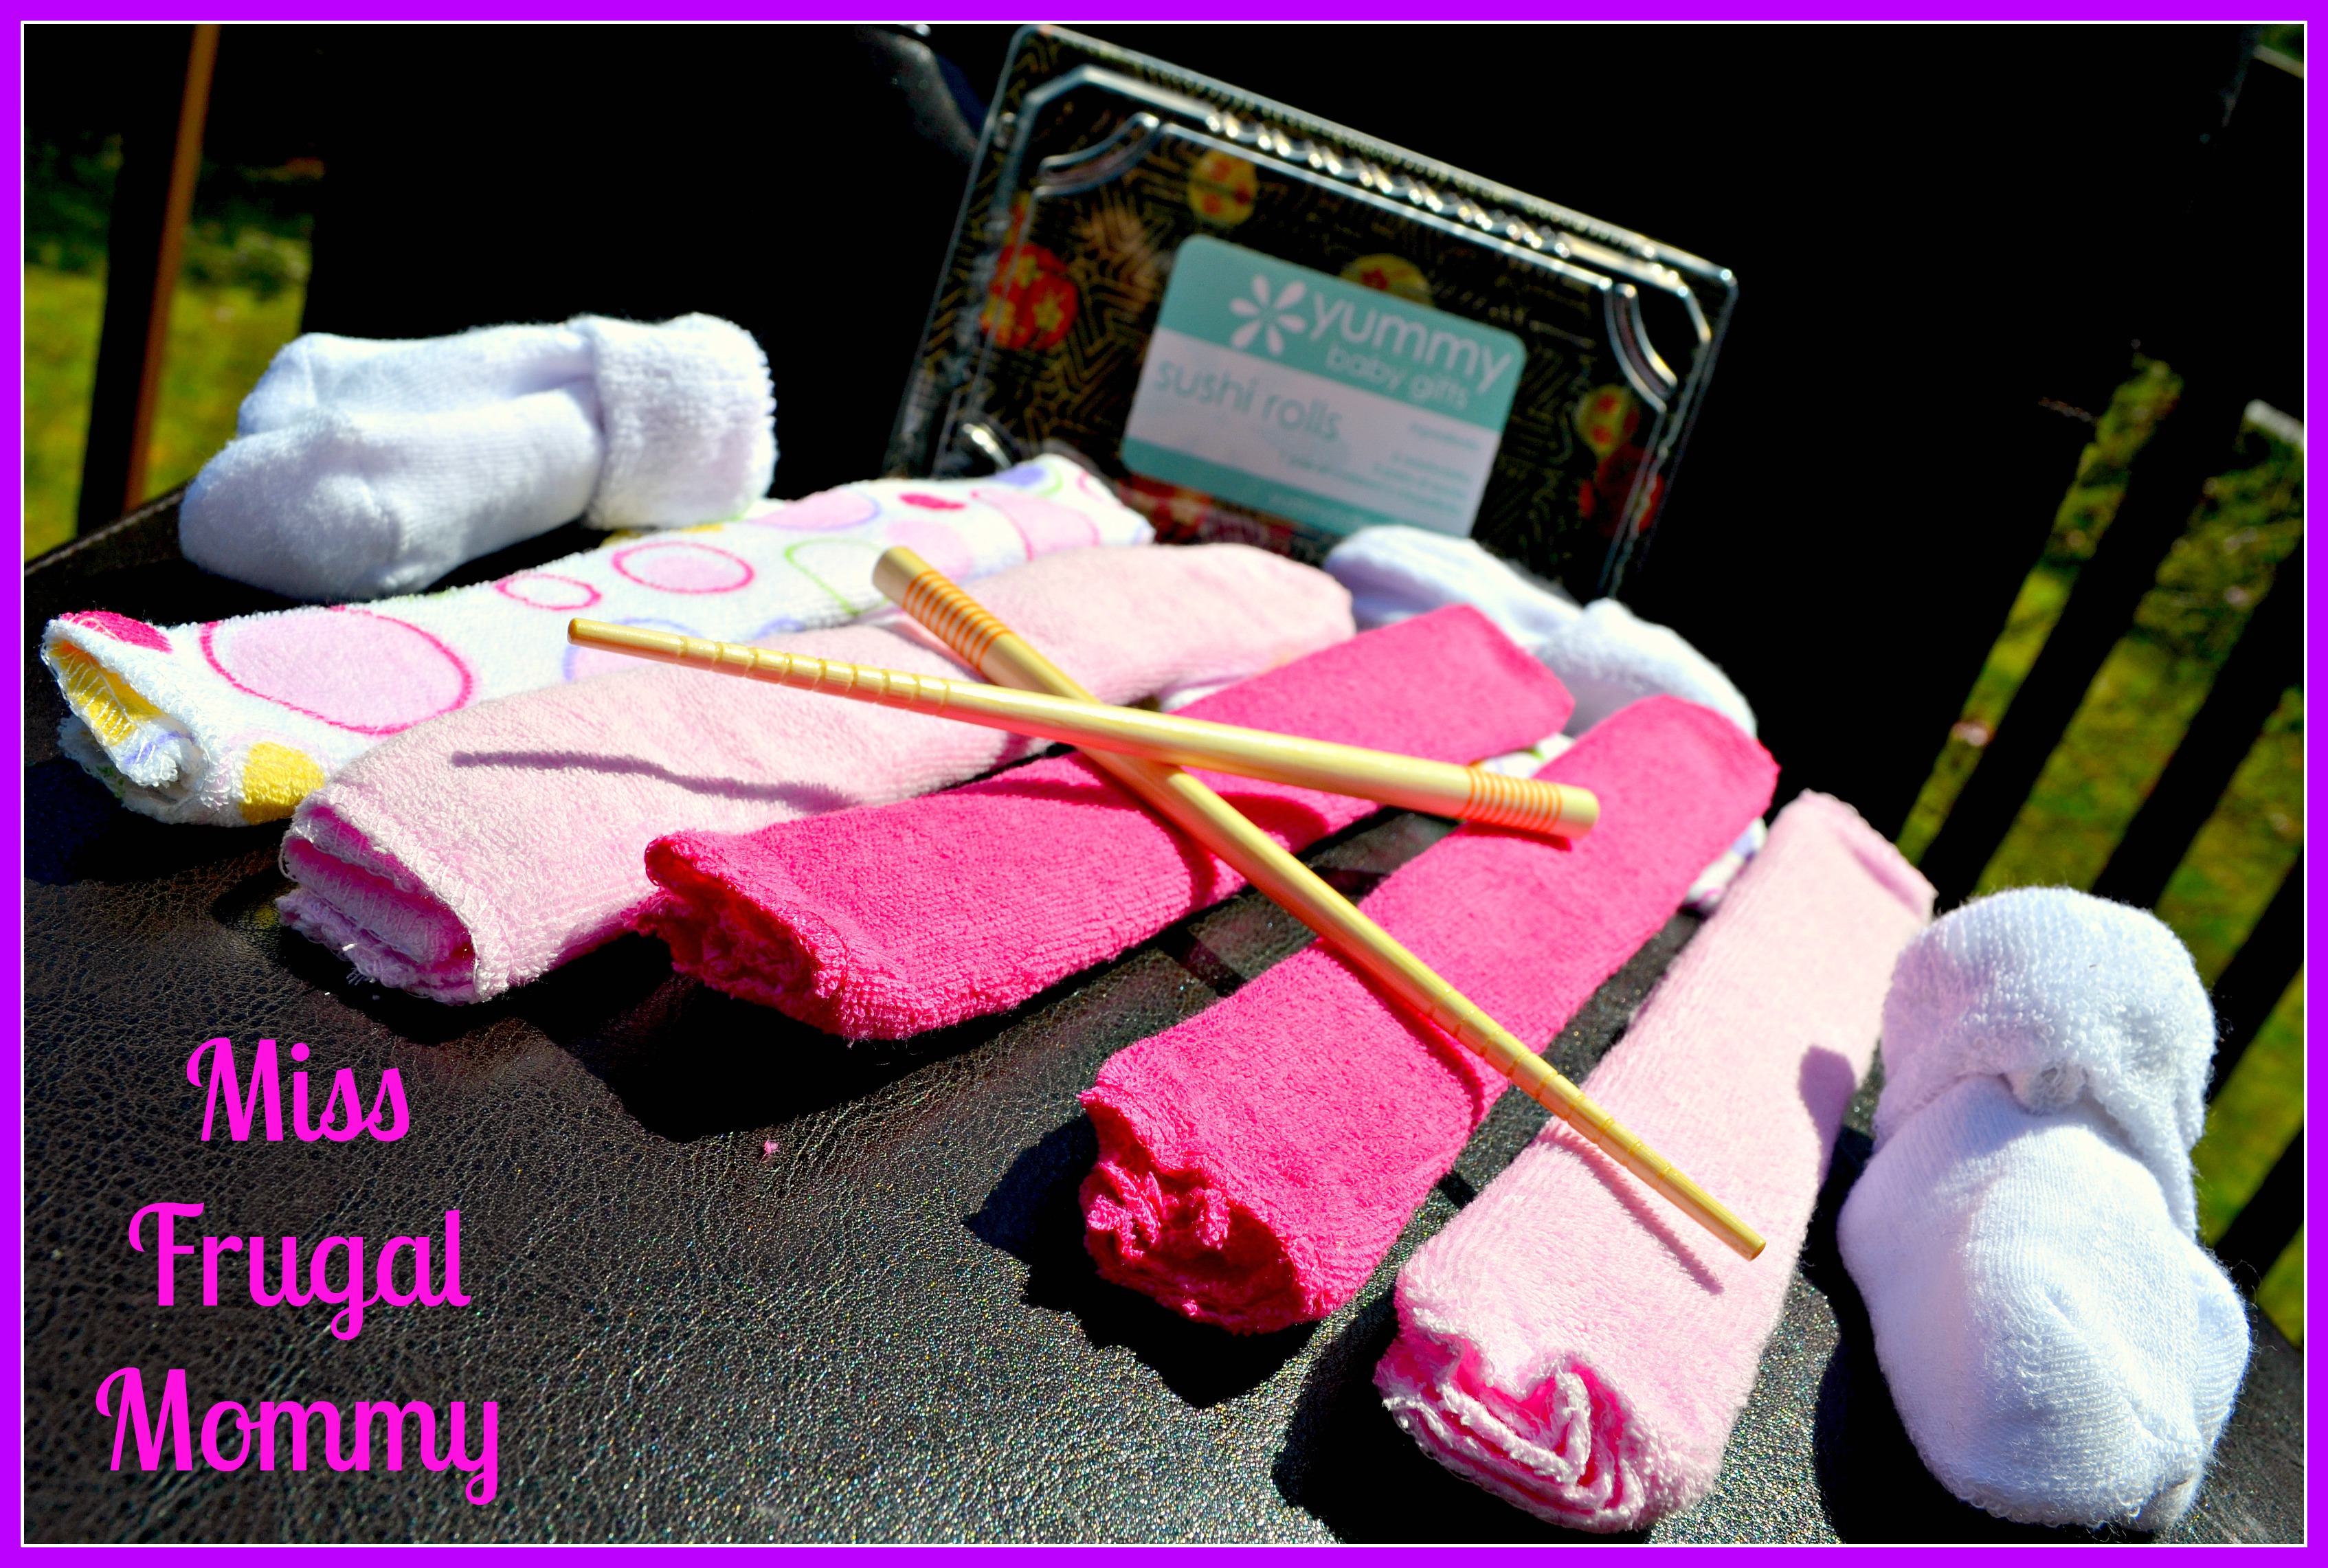 Yummy Baby Gifts: Sushi Rolls (Getting Ready For Baby Gift Guide)